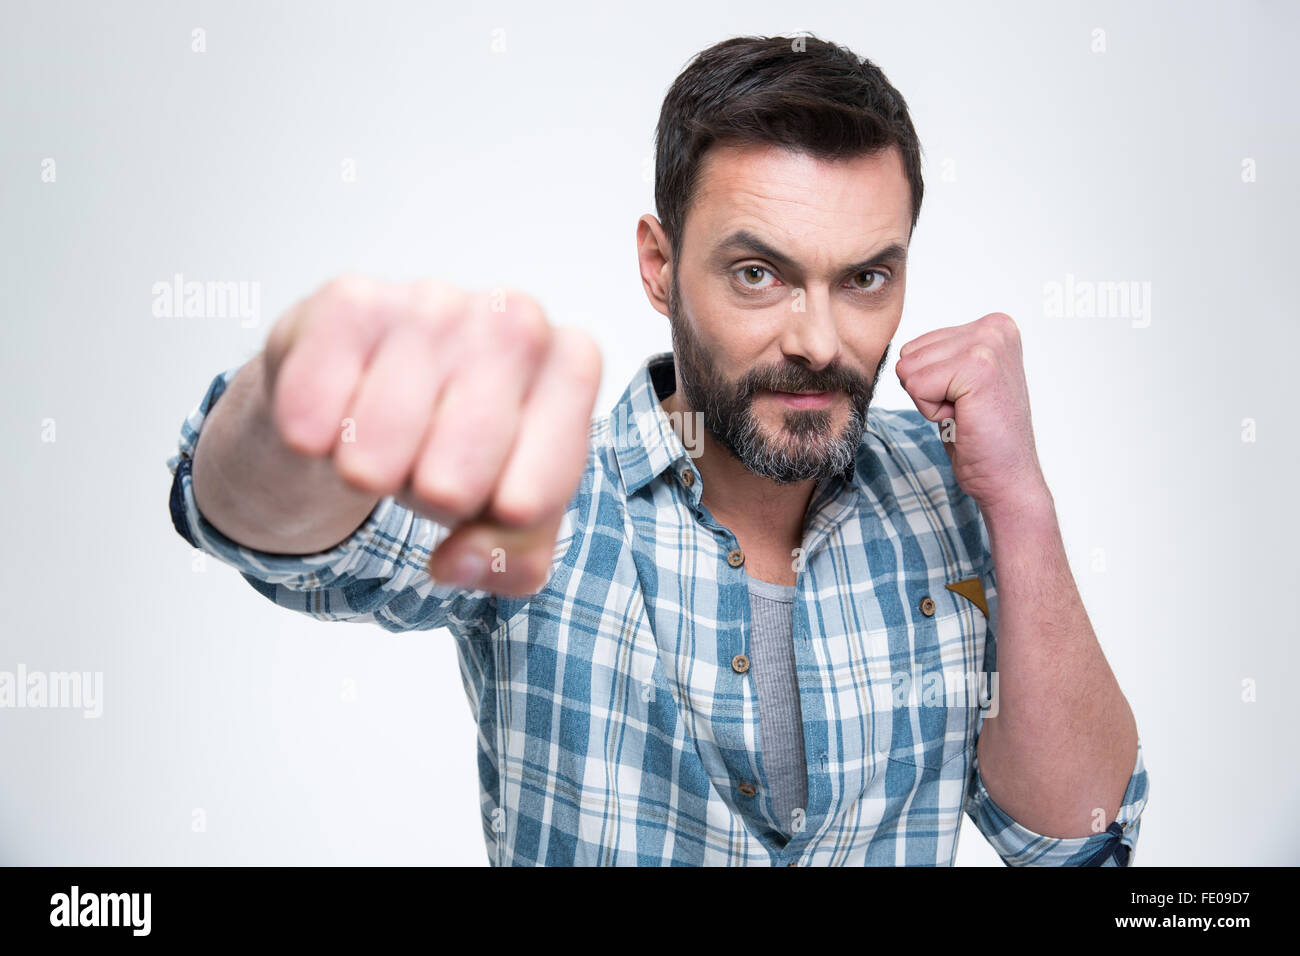 Handsome man punching with fist at camera isolated on a white background - Stock Image